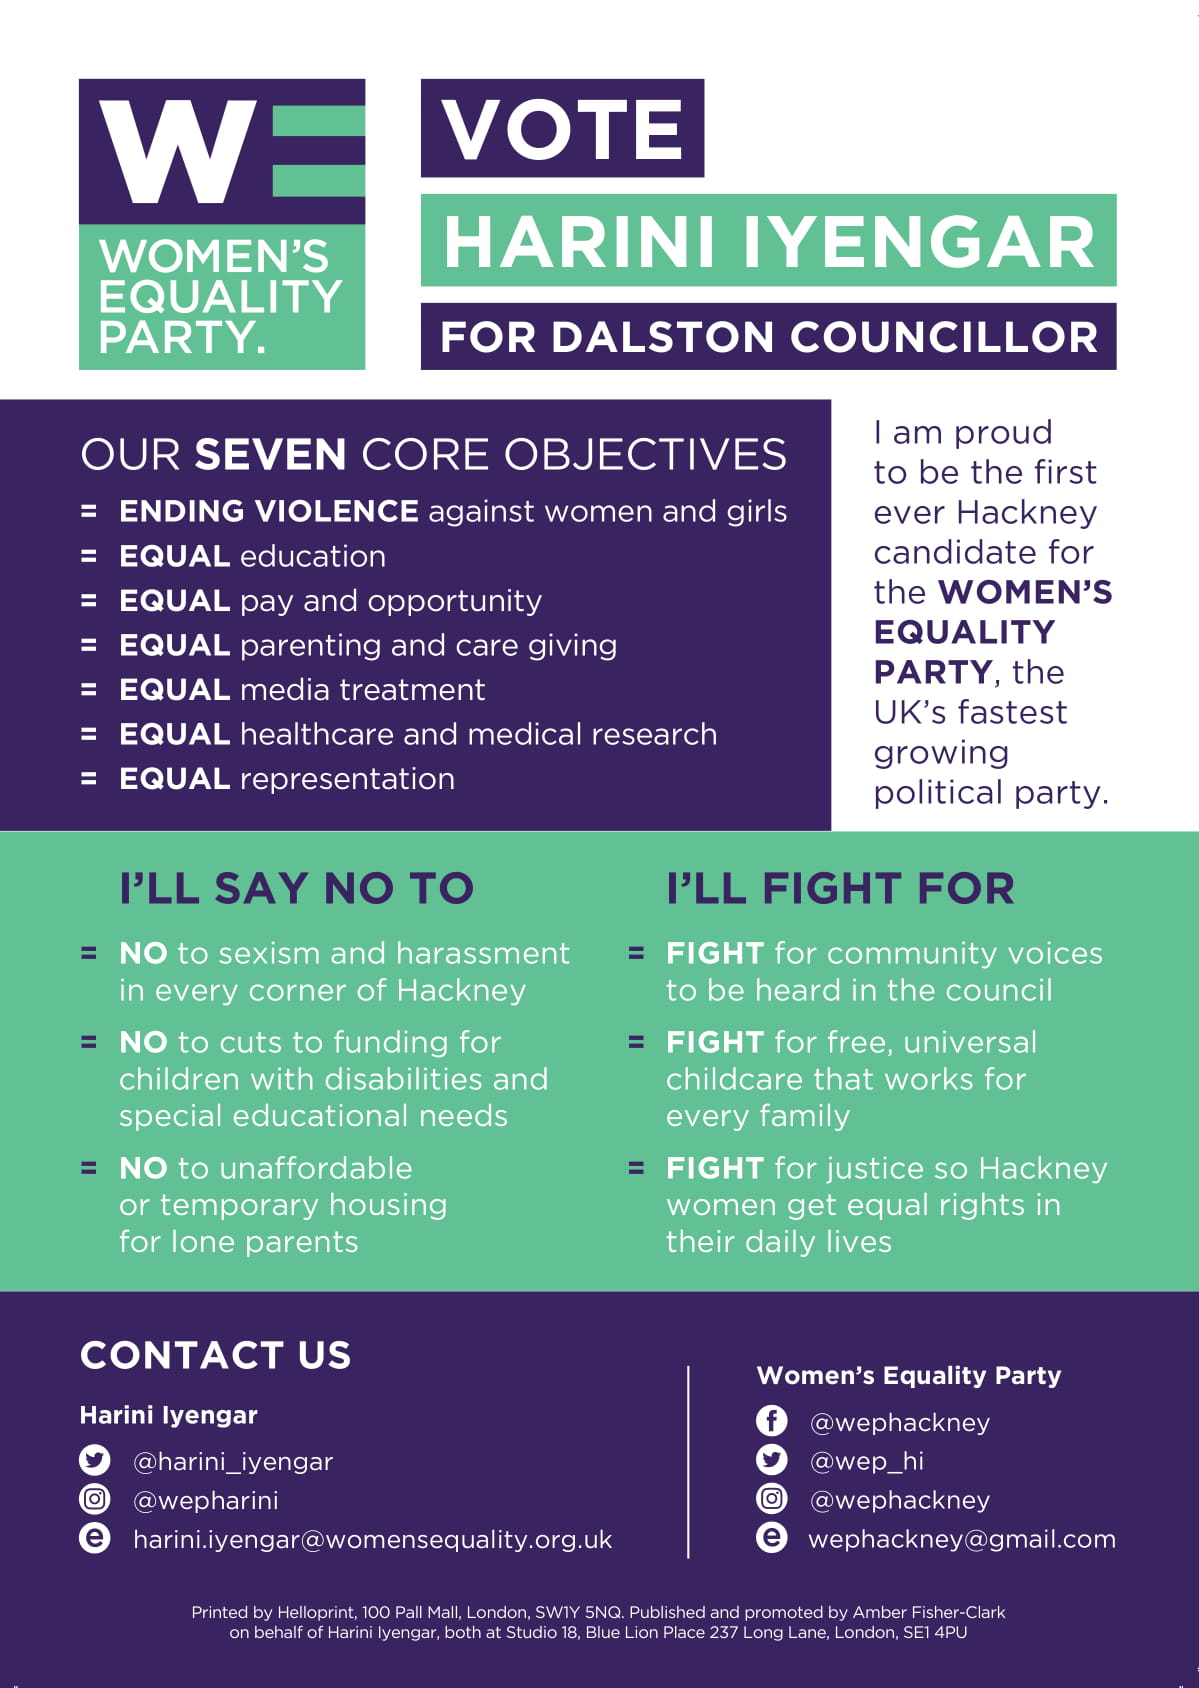 Hackney_WEP_Dalston_Councillor_Flyer_130418_crop-2.jpg